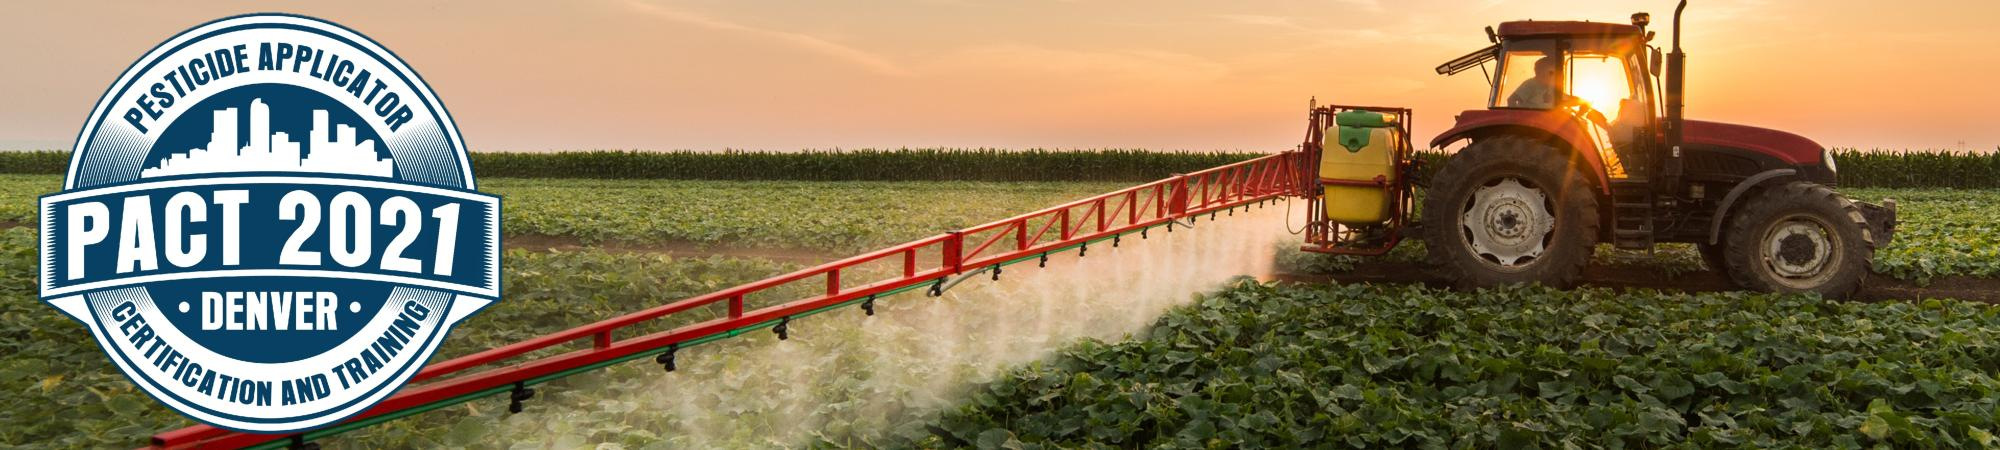 Image of tractor spraying a field.